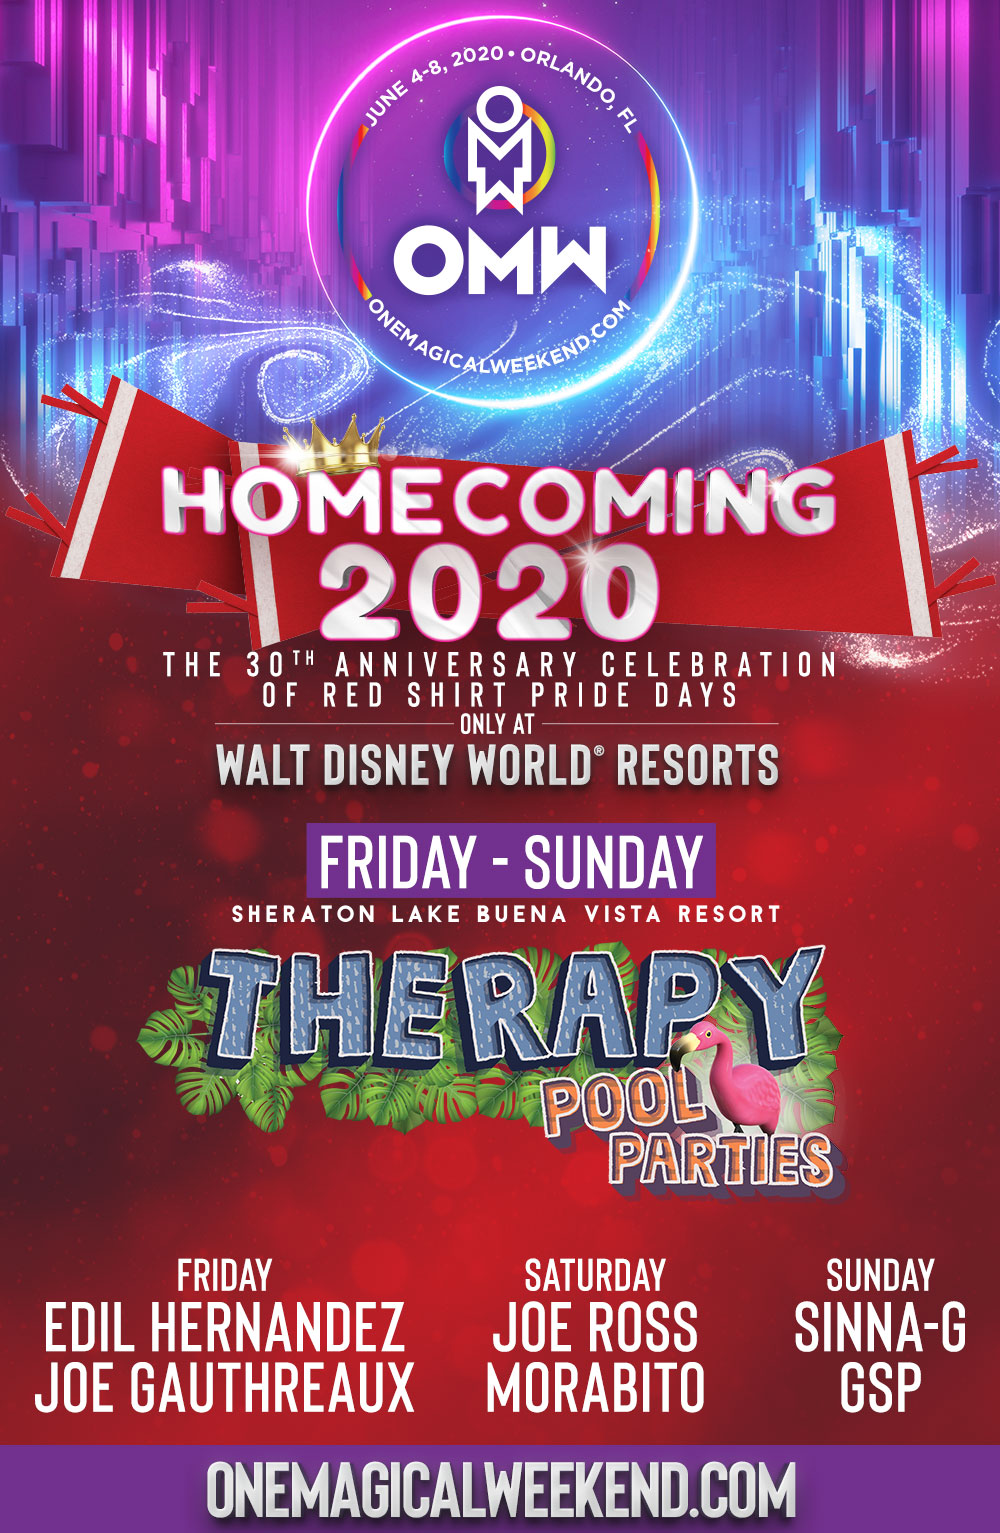 Best Dj Pool 2020 THERAPY POOL PARTIES at Sheraton Lake Buena Vista   One Magical